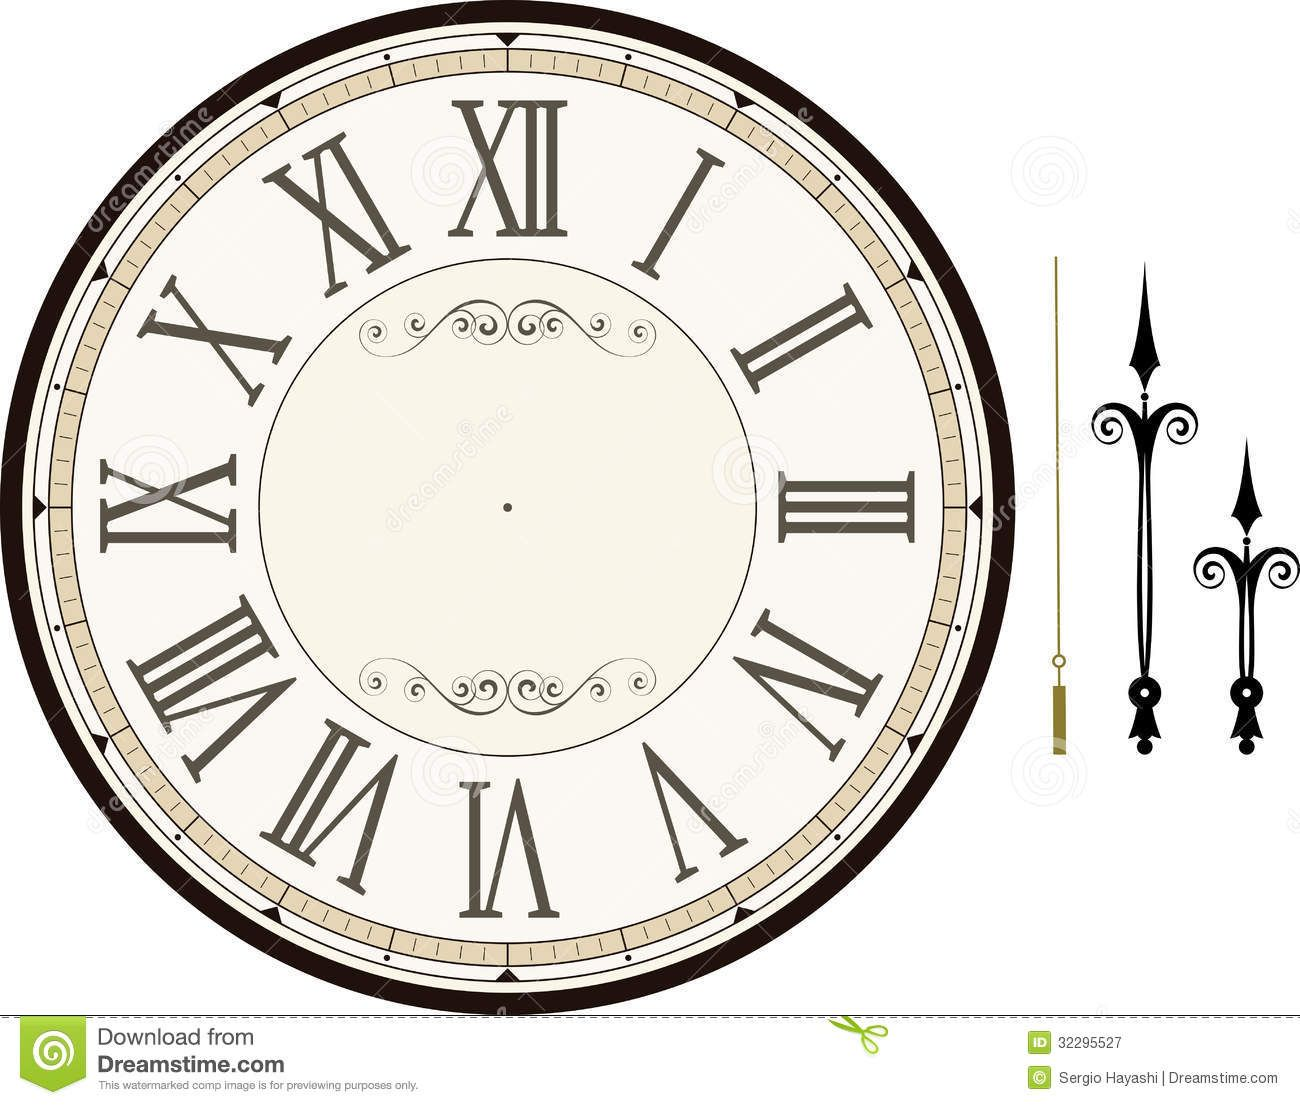 Worksheet Clock Faces To Print Free 1000 images about clock faces on pinterest